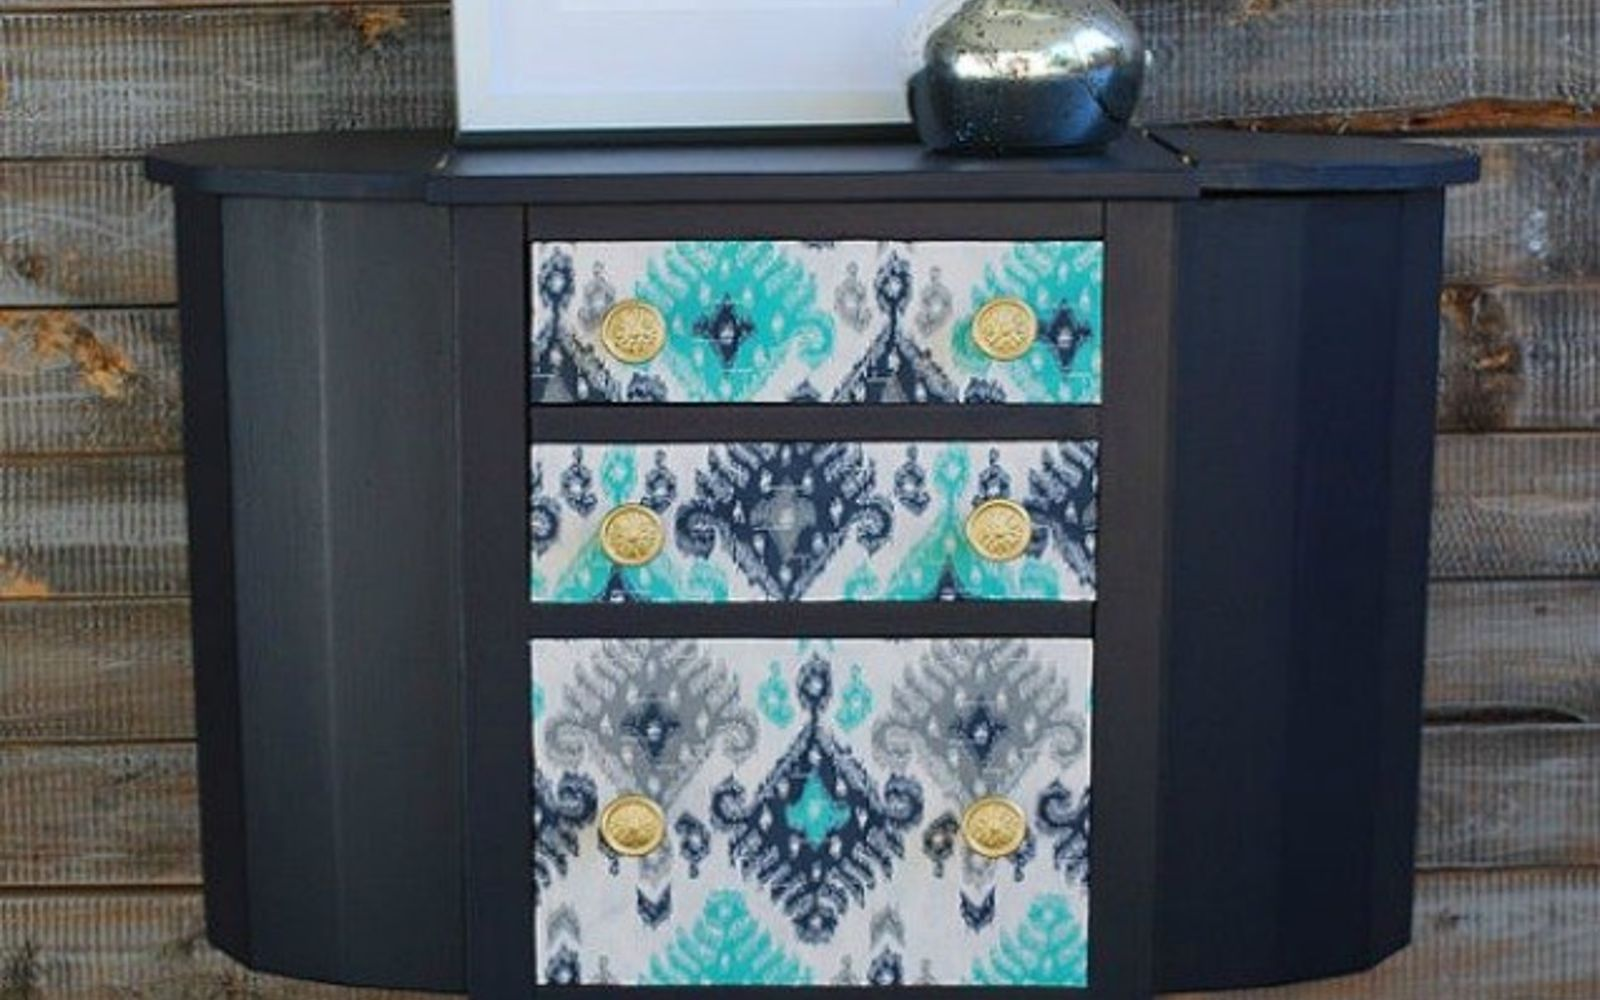 s 12 wildly creative ways to use your old sewing table, painted furniture, Decoupage it with colorful fabric